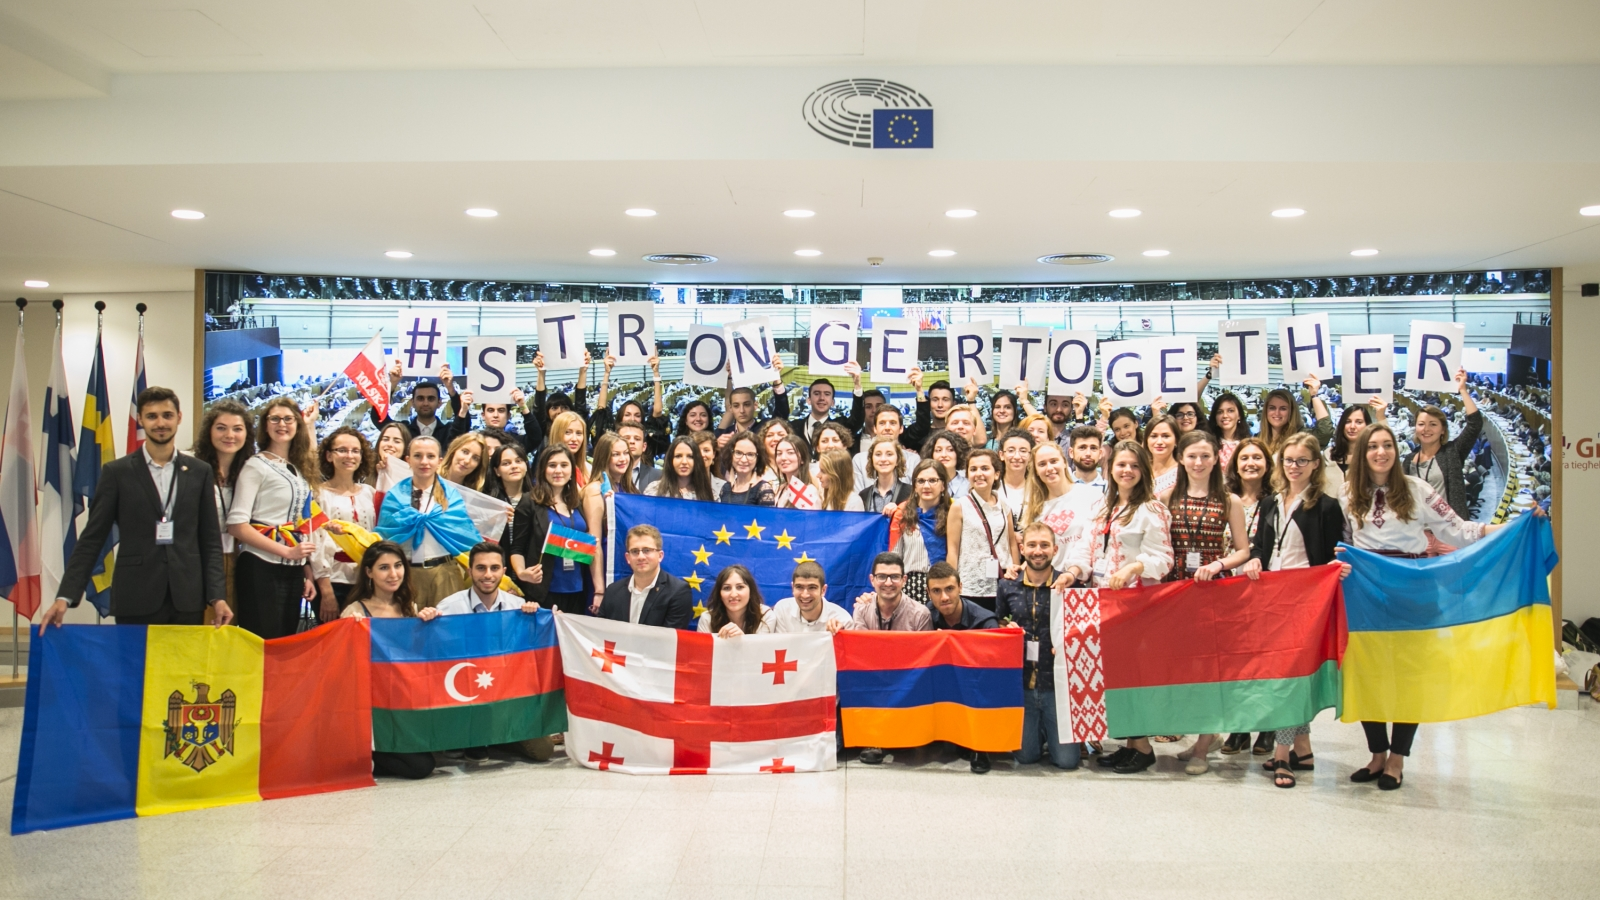 Call for Applications: Become a Young European Ambassador!